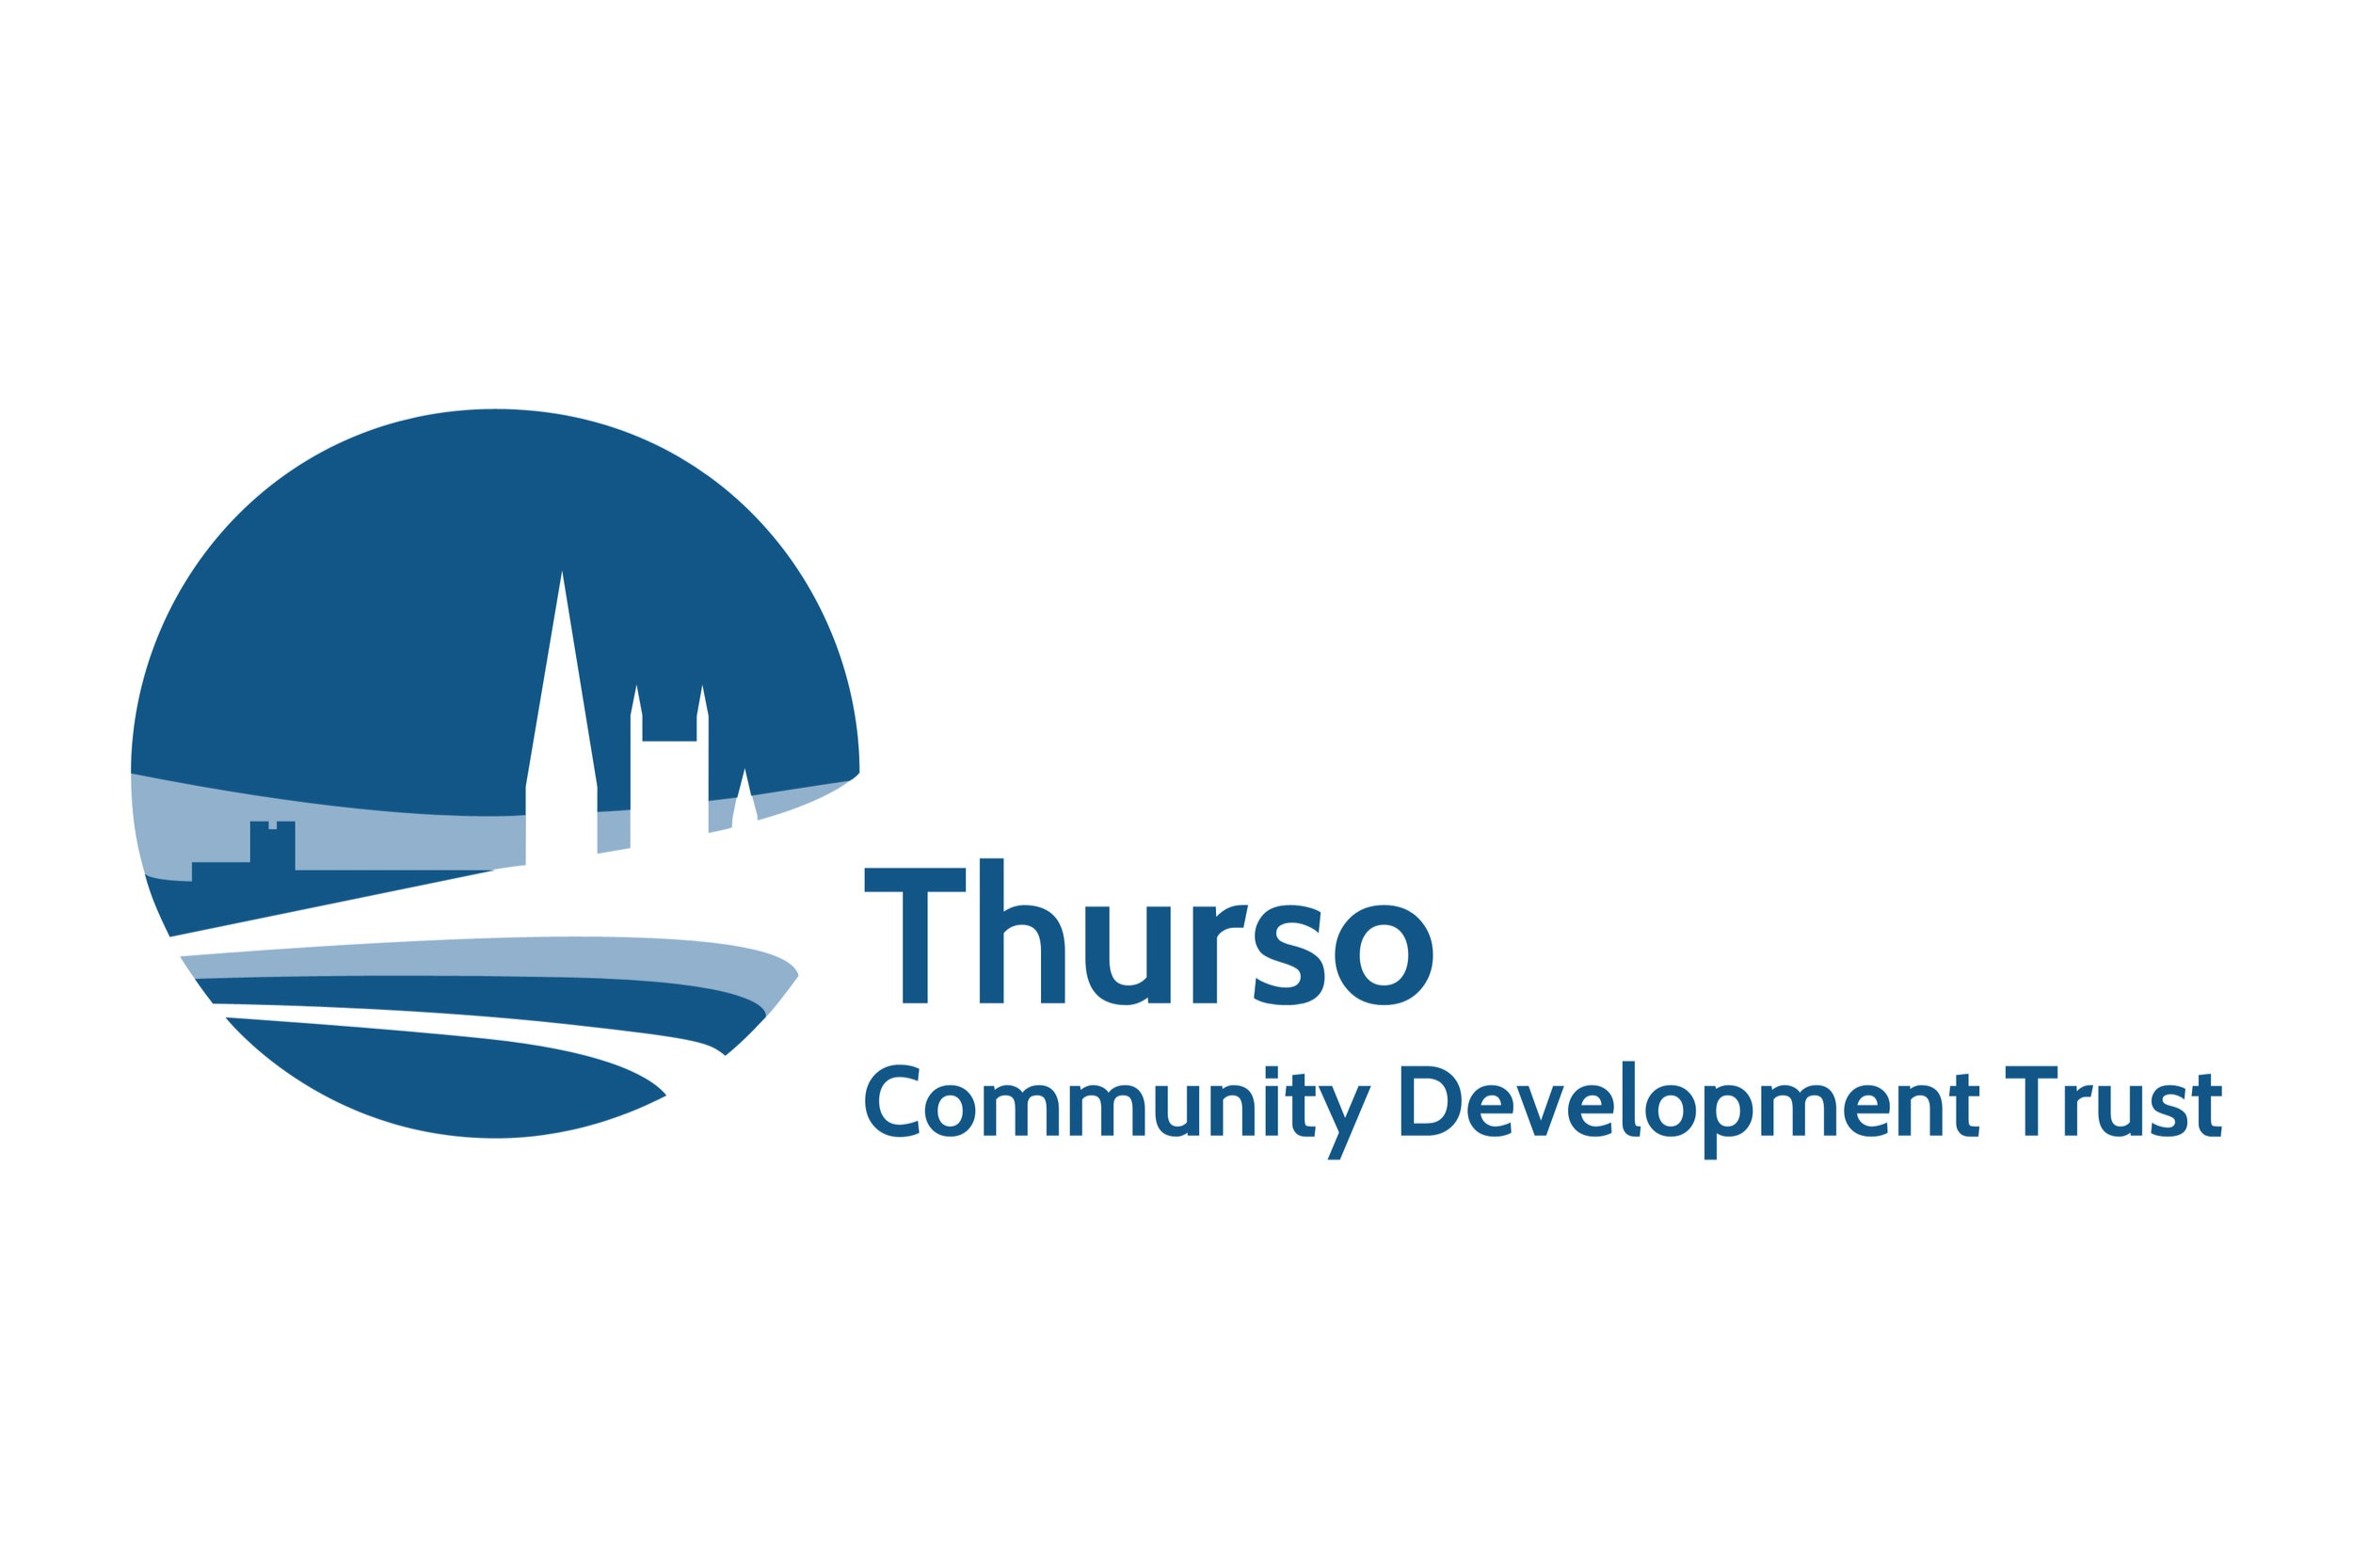 All about the Trust - Meet our Board & Staff, aims & objectives, community consultation, documents and reports